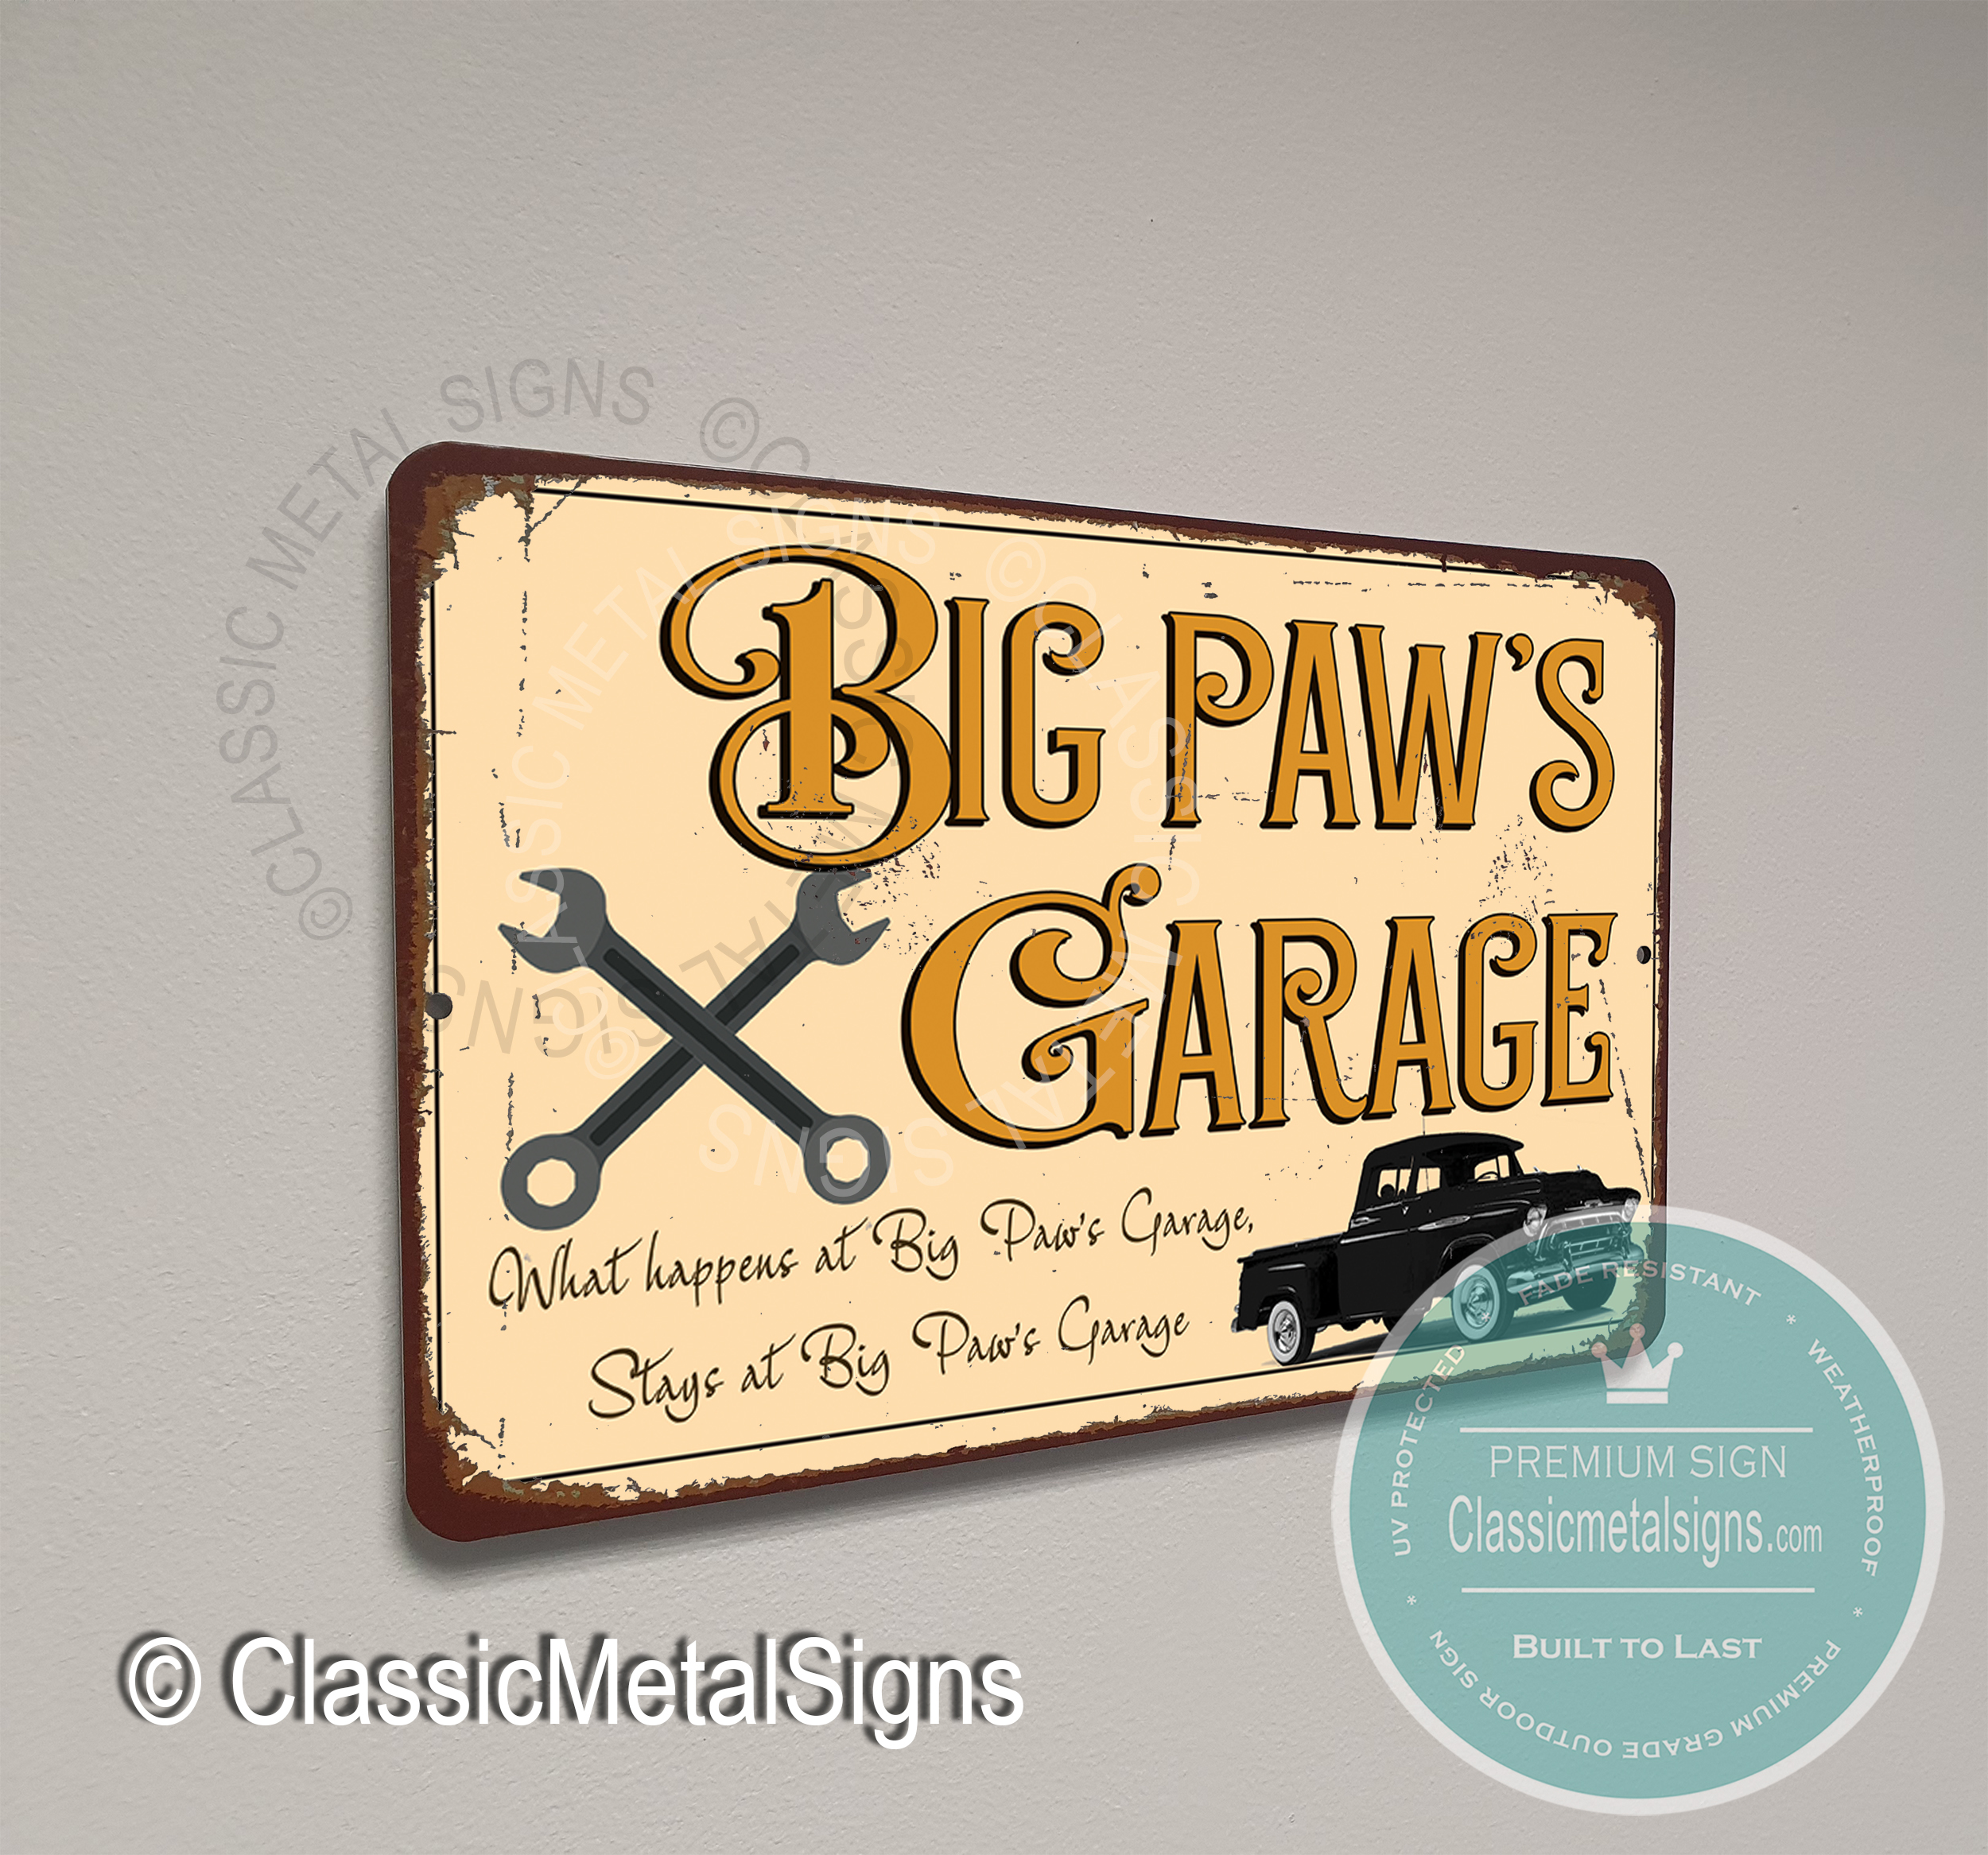 Big Paw's Garage Signs